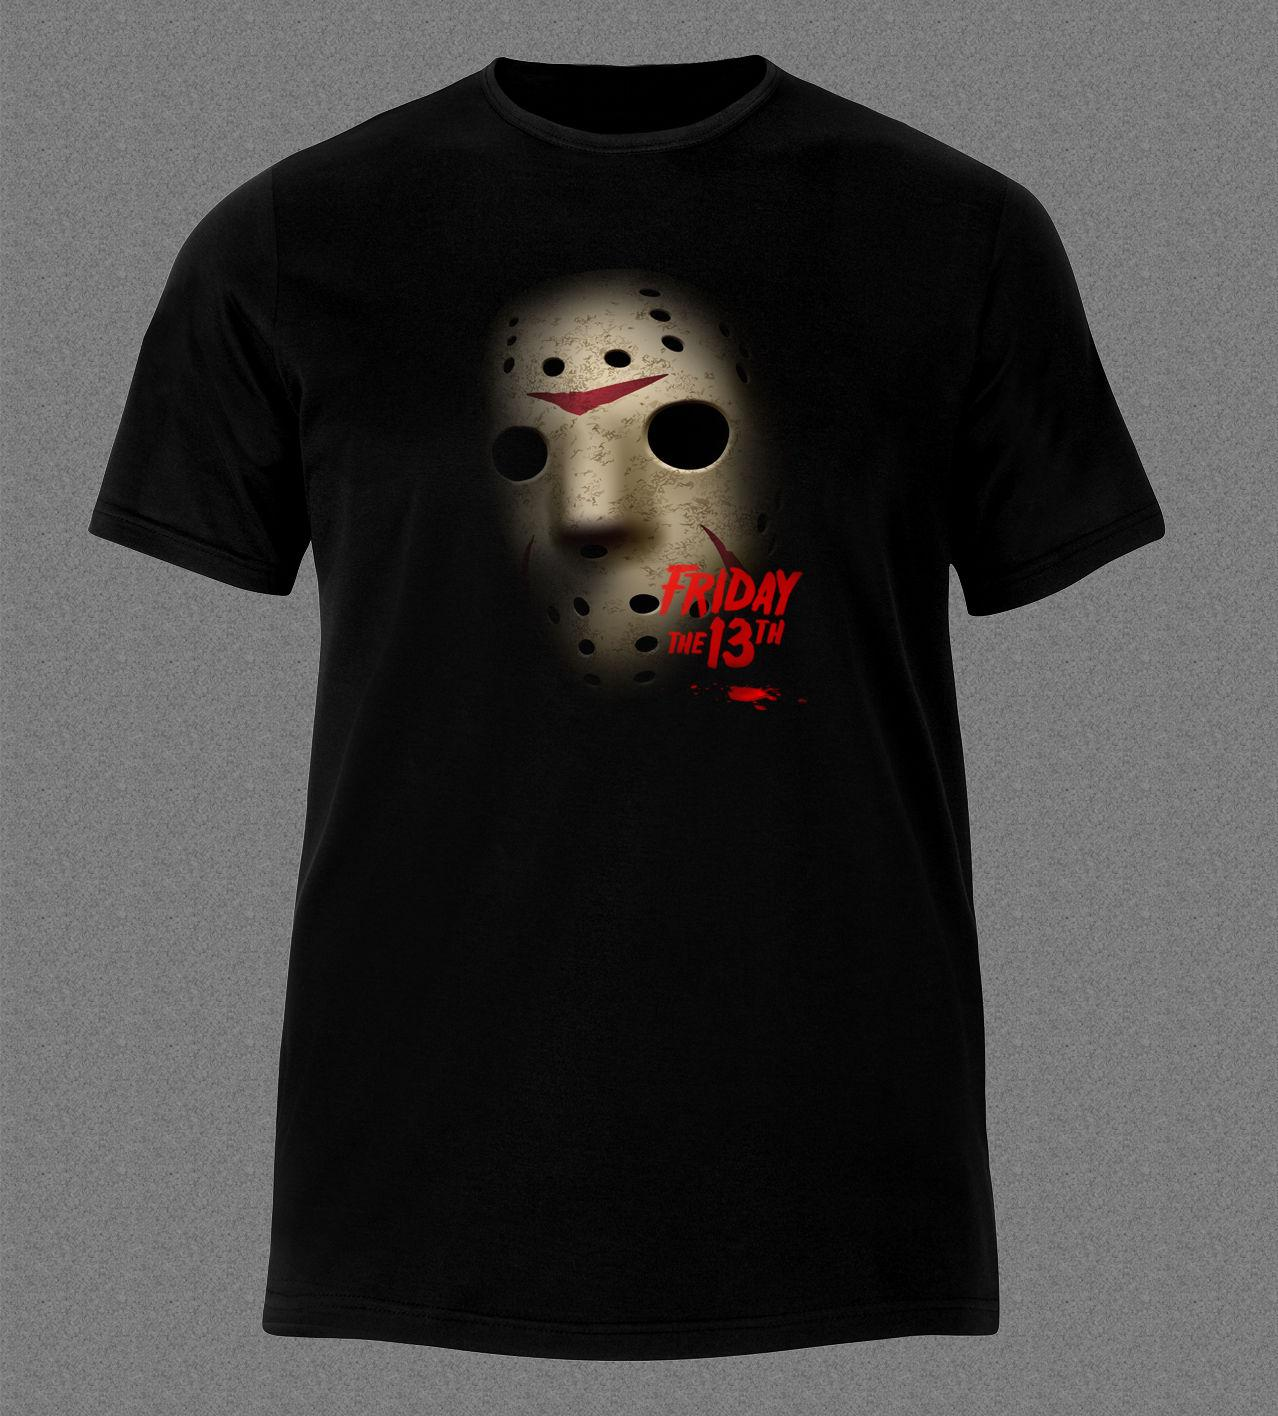 Friday 13th Jason Horror Black T Shirt Men T Shirt Print Cotton Short  Sleeve T Shirt Fashion Unique Classic Cotton Men Hilarious Shirts Funky T  Shirts ... c881cf1b8d